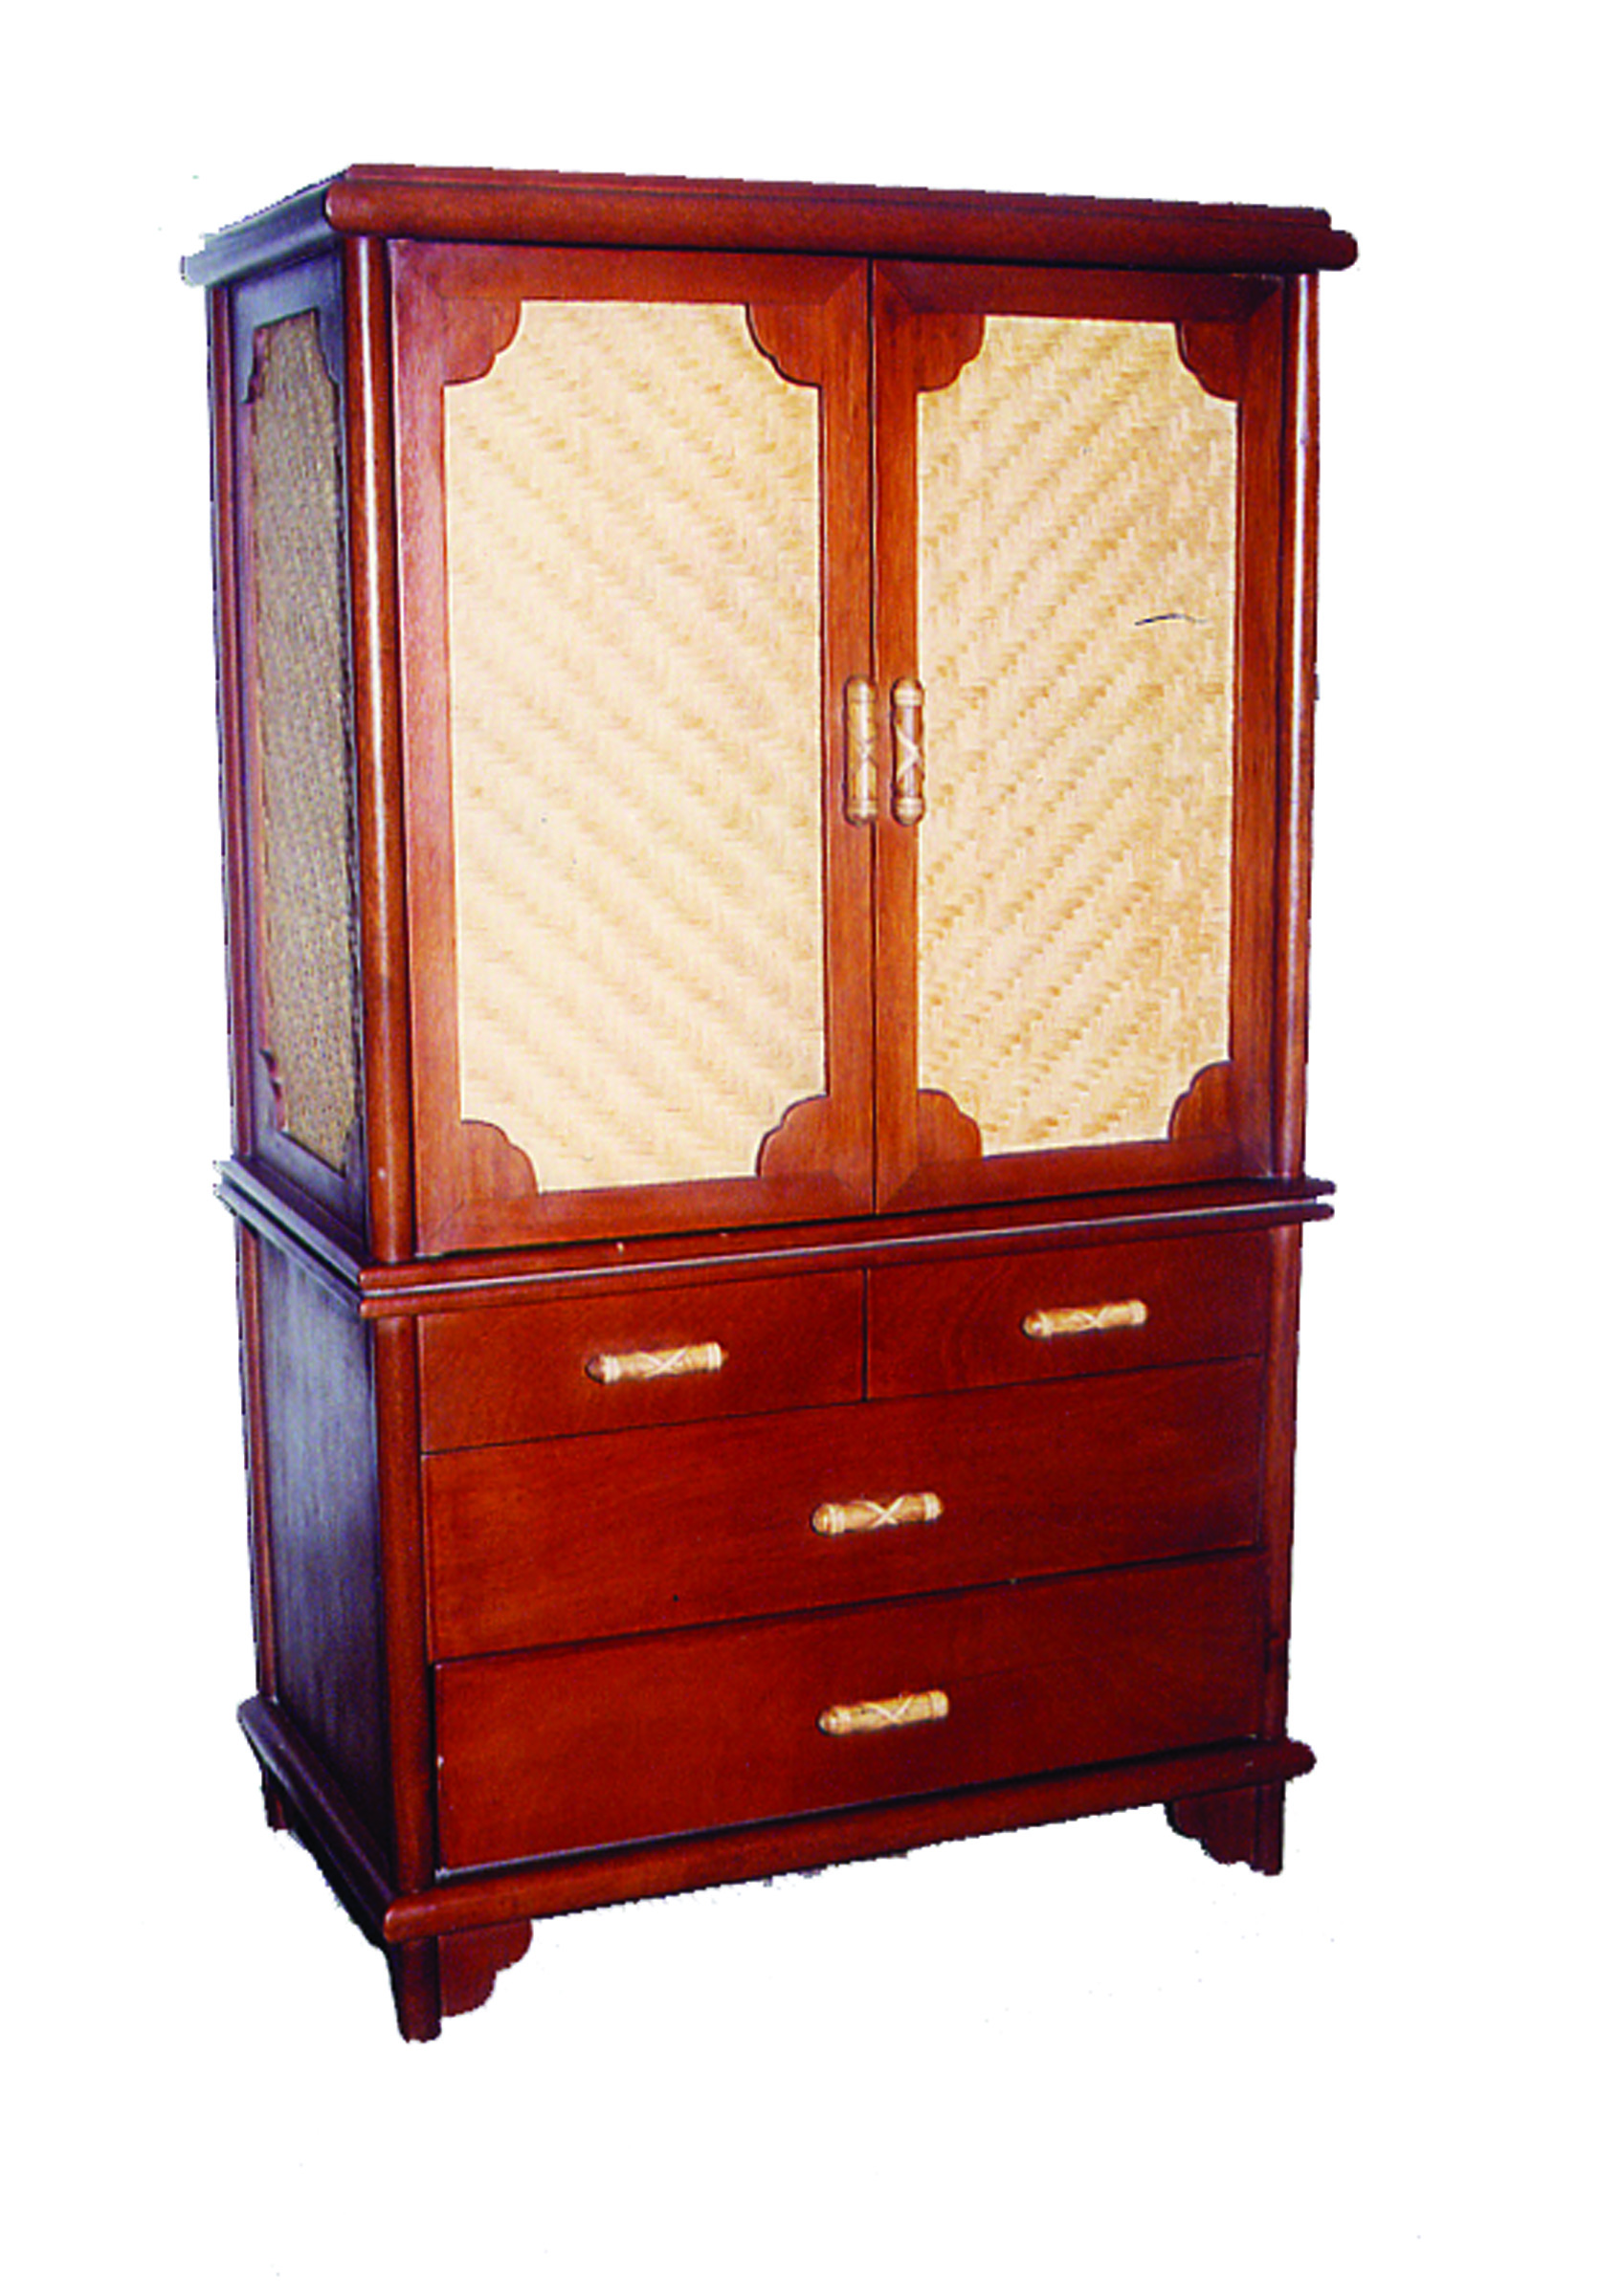 FB-1031-A-SP-R Filwood Armoire